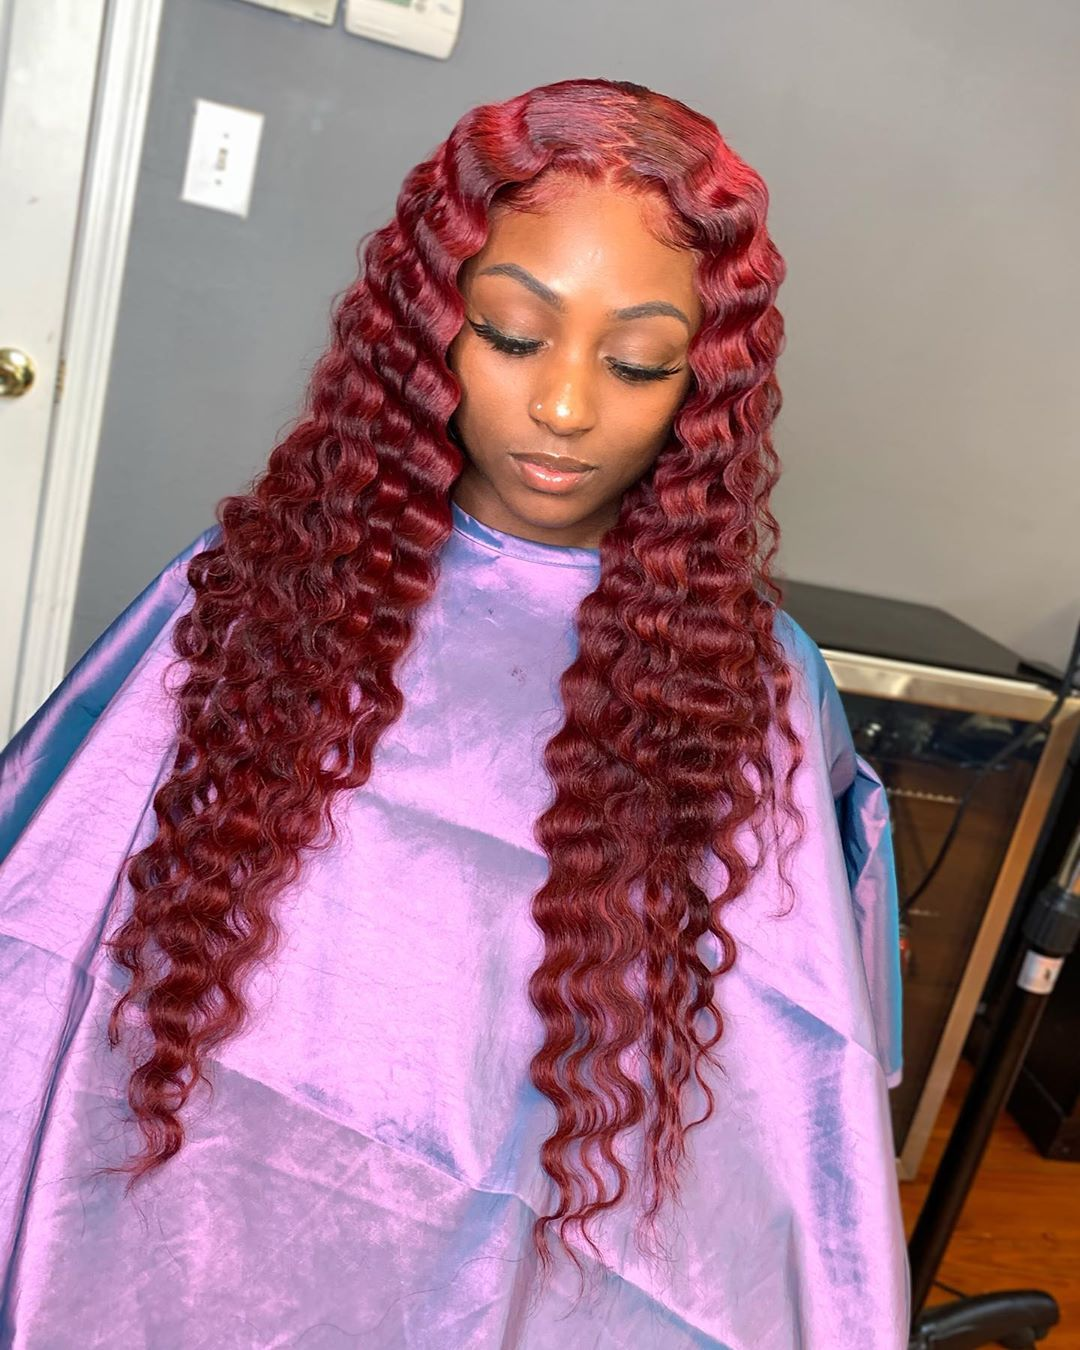 Red Wigs Lace Front Medium Length Hairstyles With Bangs 2018 Hairstyles For Short Hair Black Women Male Short Haircuts Virgin Hair Styles 1960S Hairstyles Best Hairstyle For Men